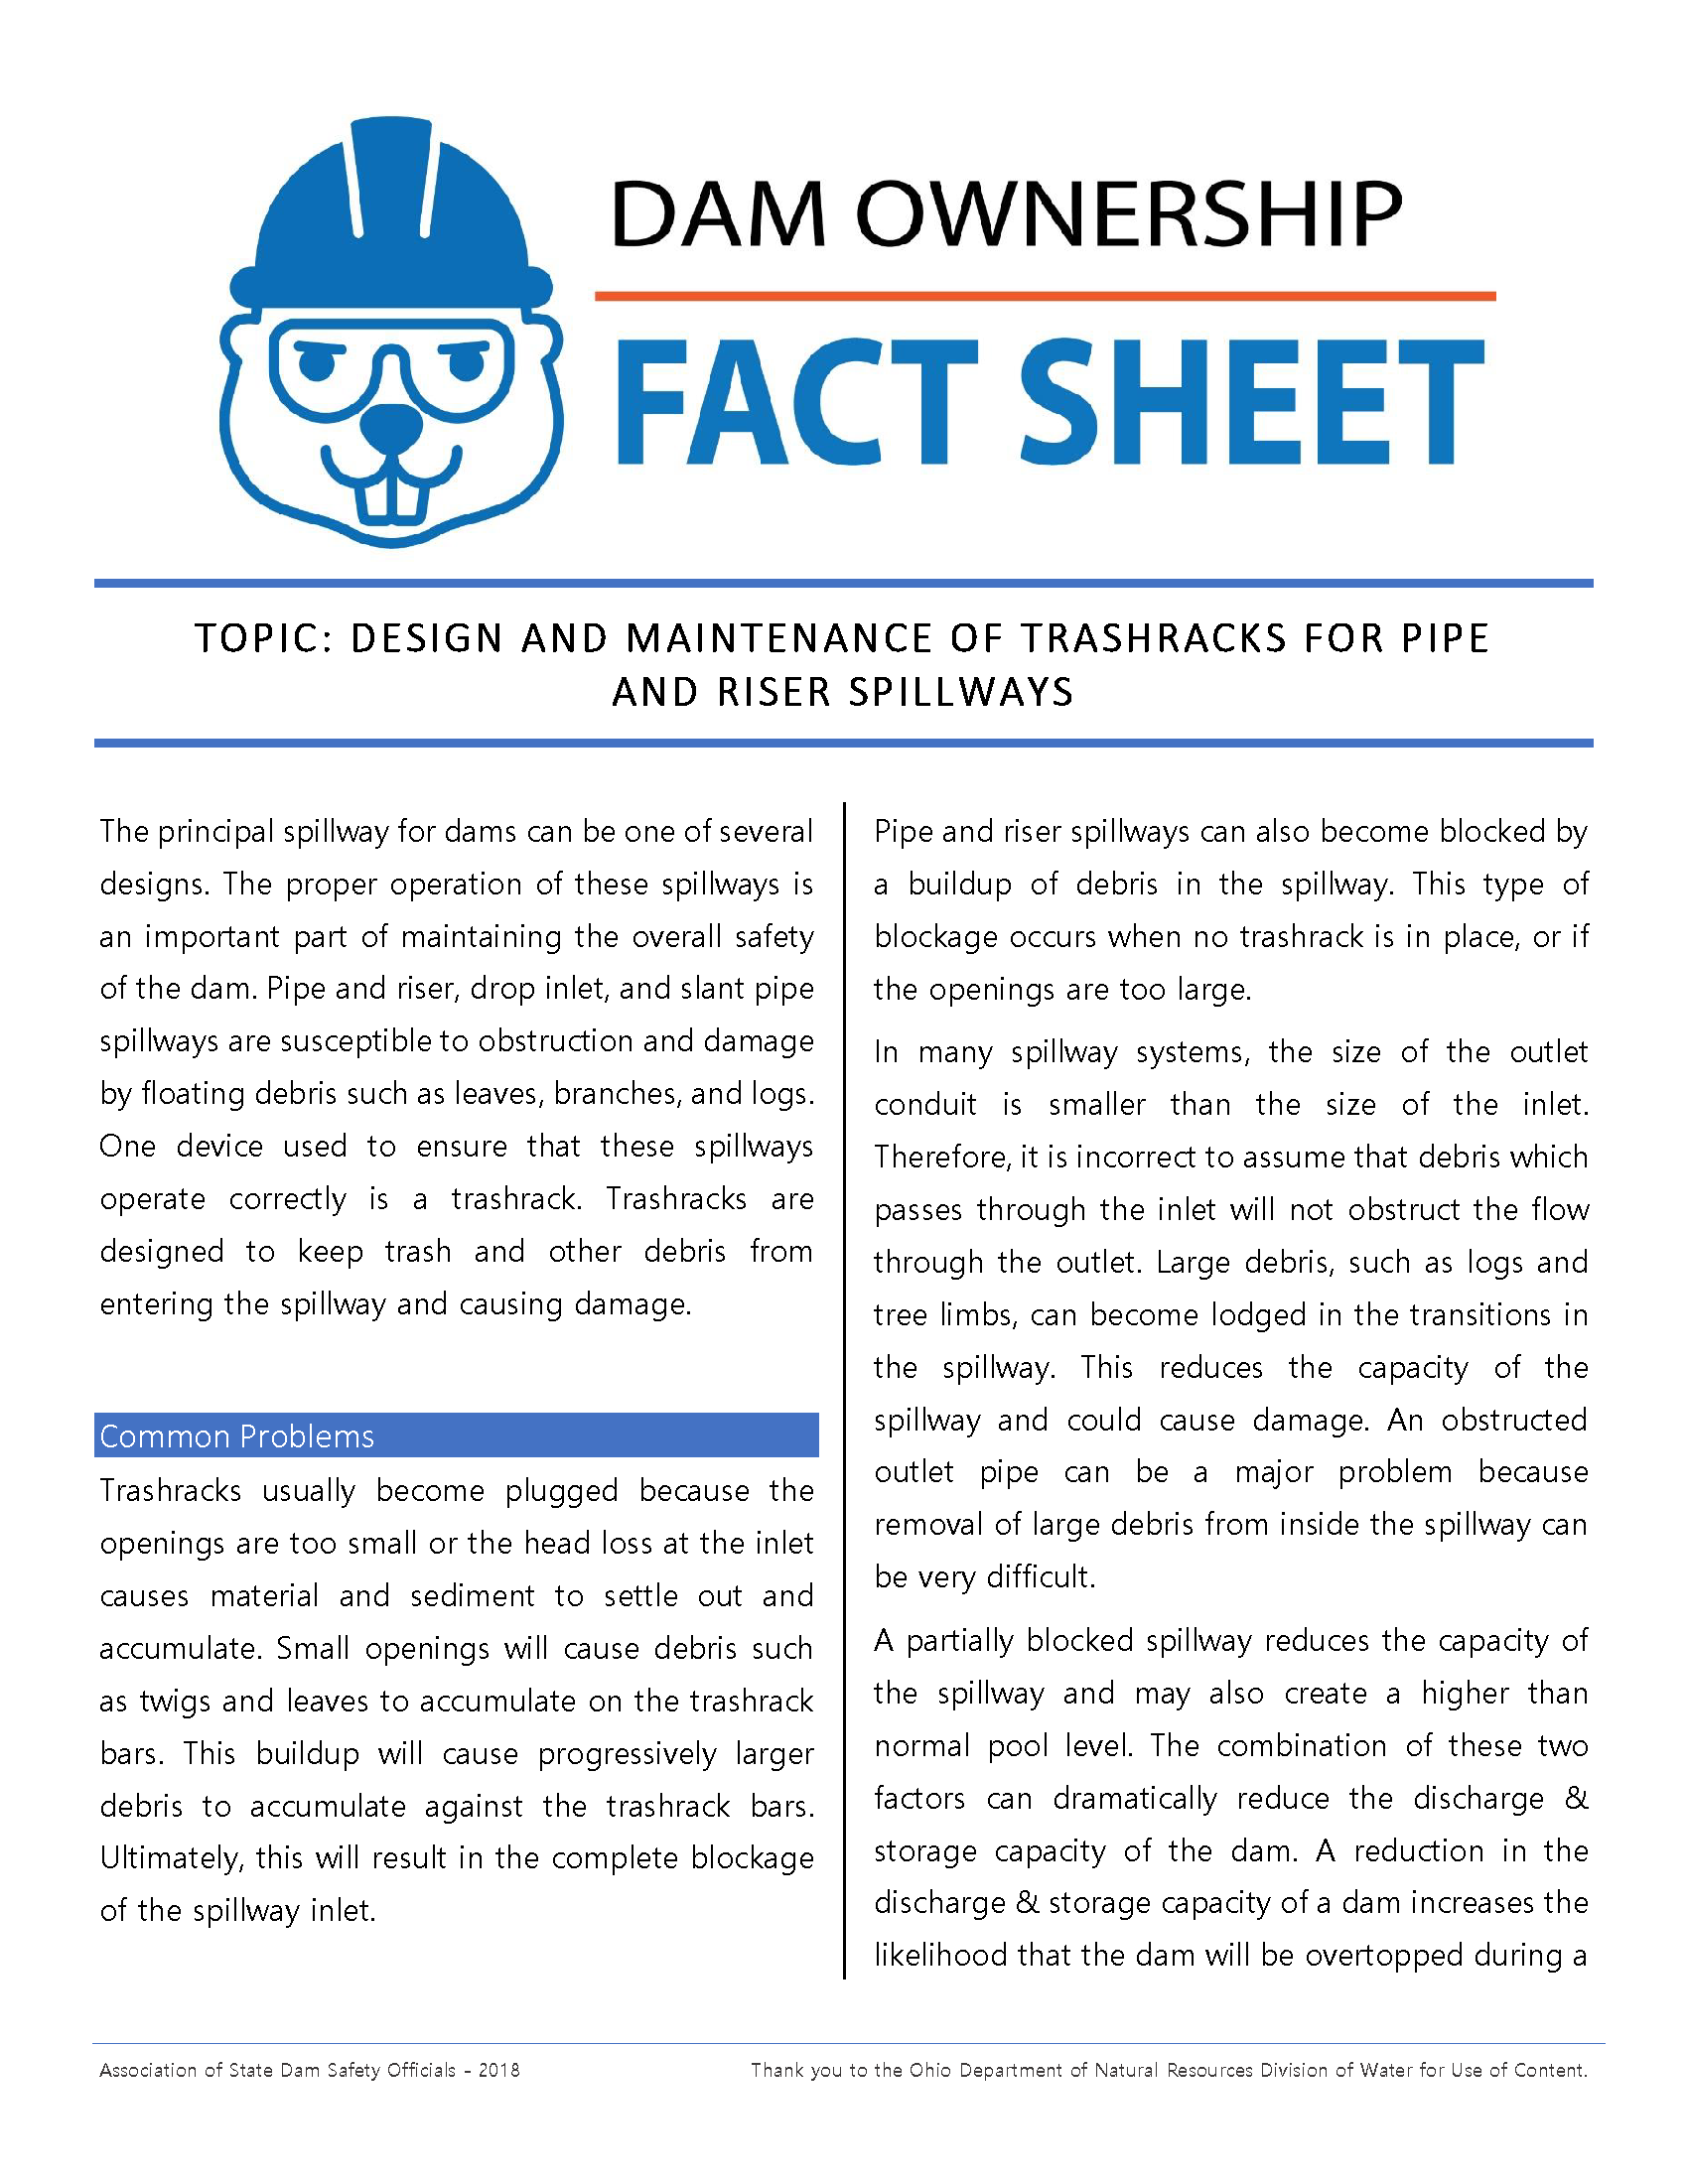 Design and Maintenance of Trash Racks Fact Sheet 2018_Page_1.png